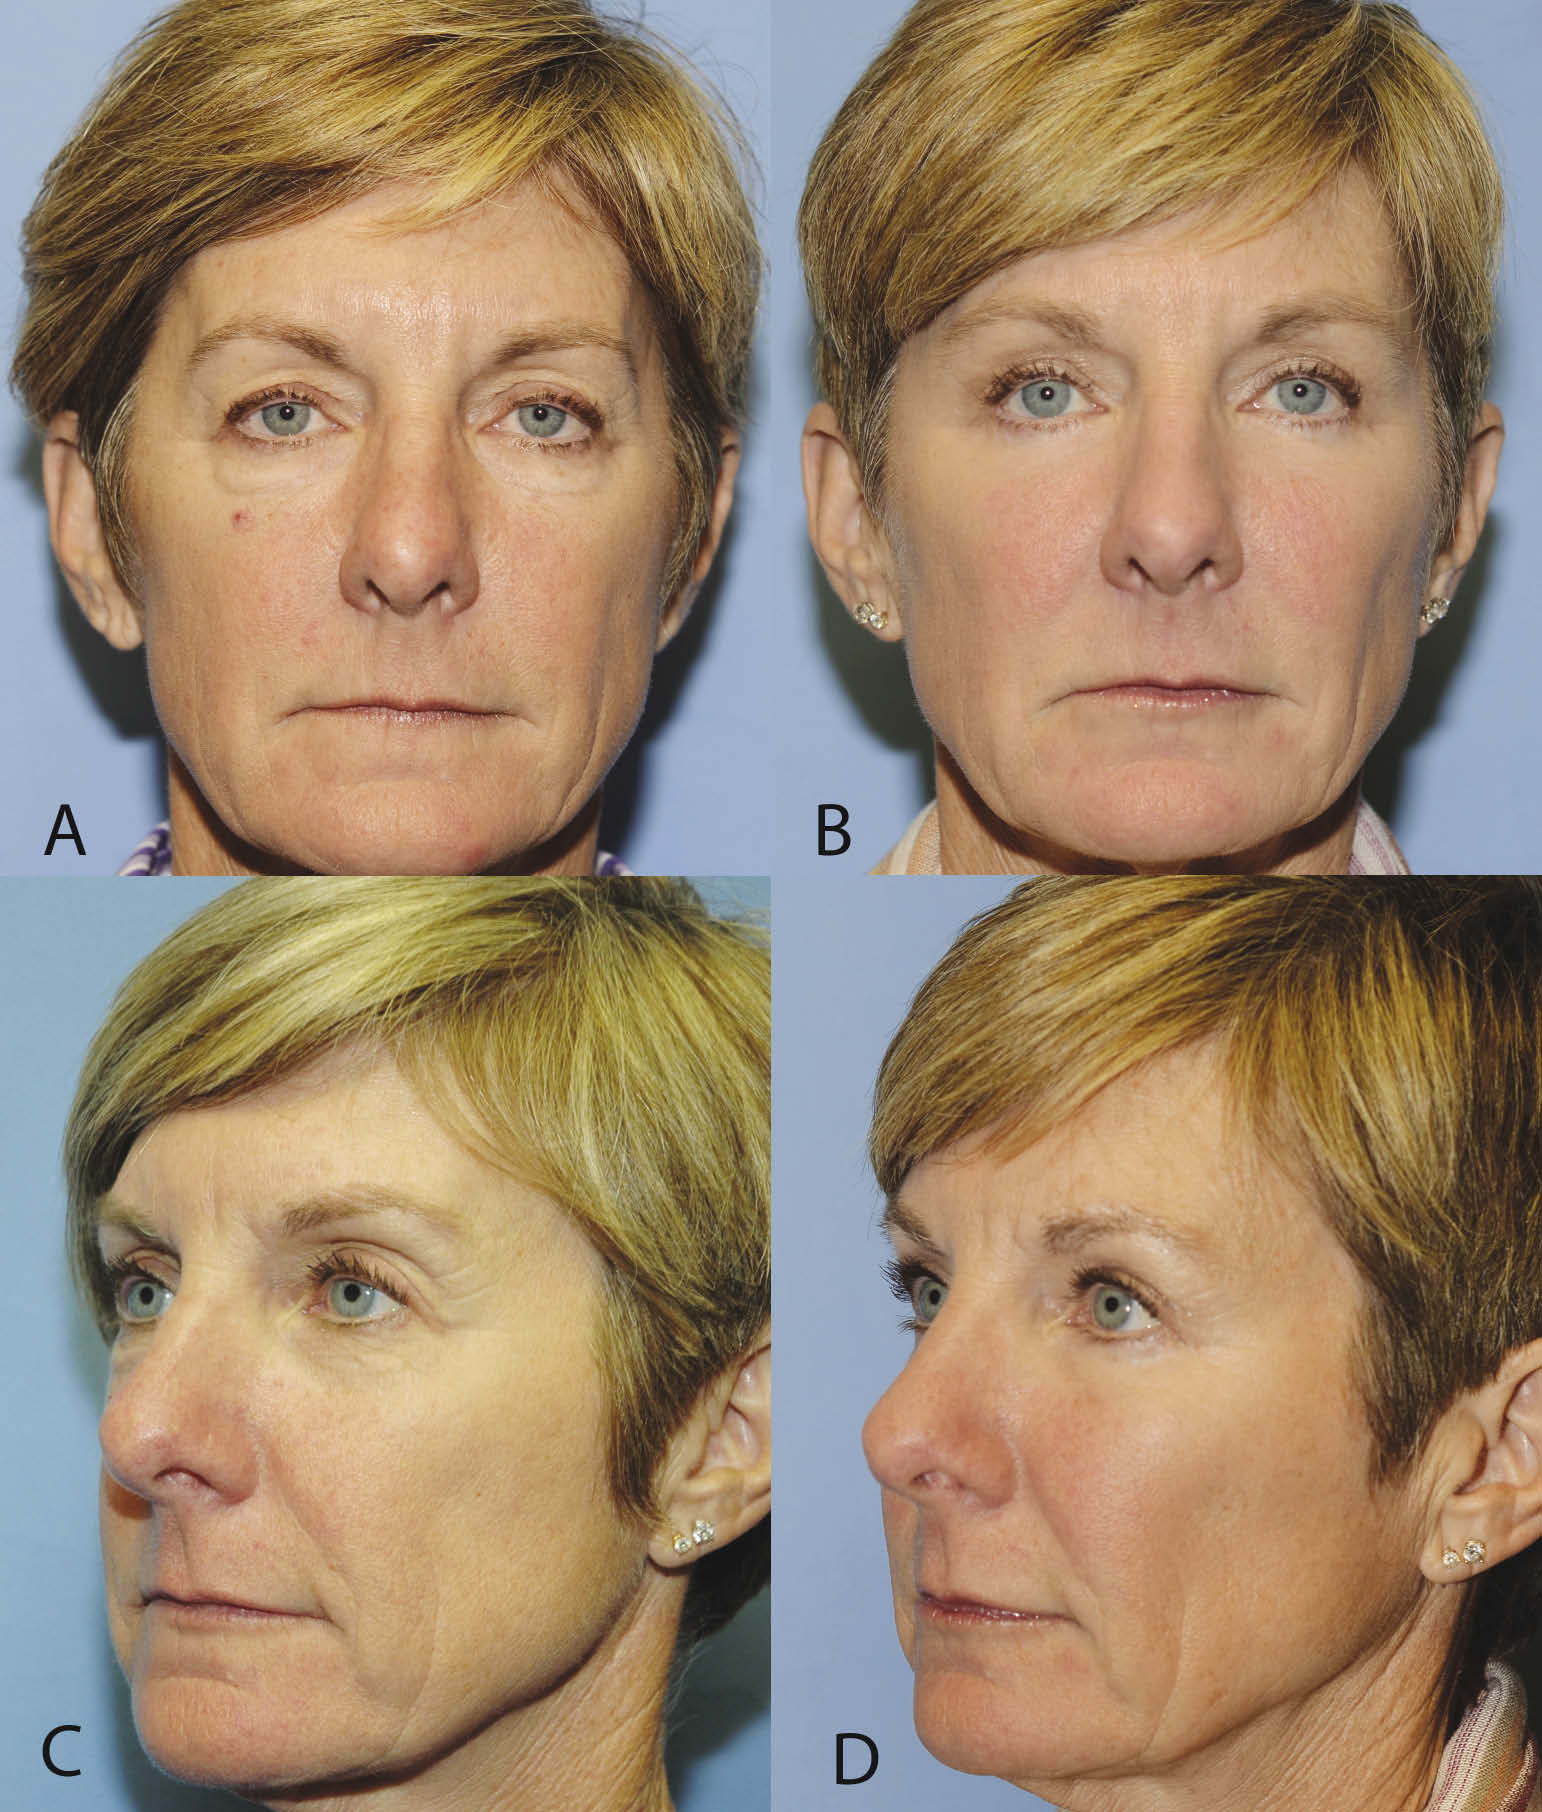 10-month result. Upper and lower blepharoplasty with fat repositioning and augmentation